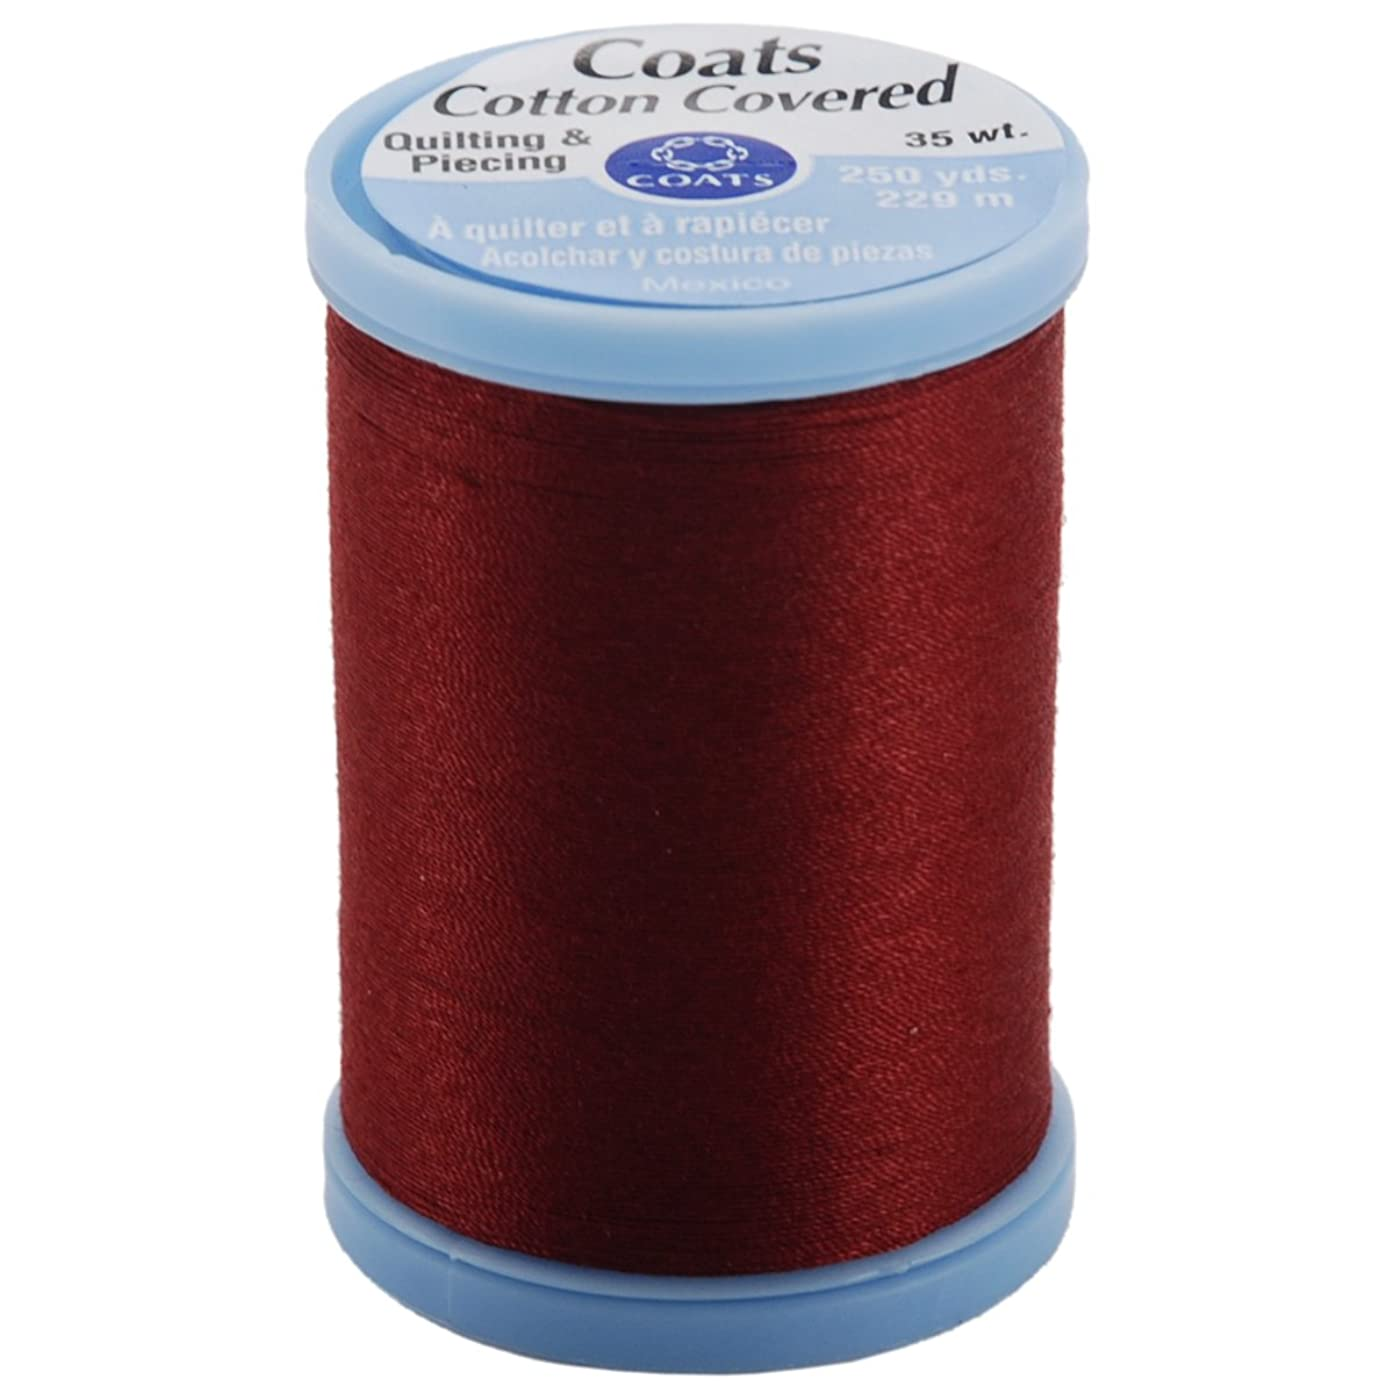 Coats & Clark S925-2820 Cotton Covered Quilting and Piecing Thread, 250-Yard, Barberry Red